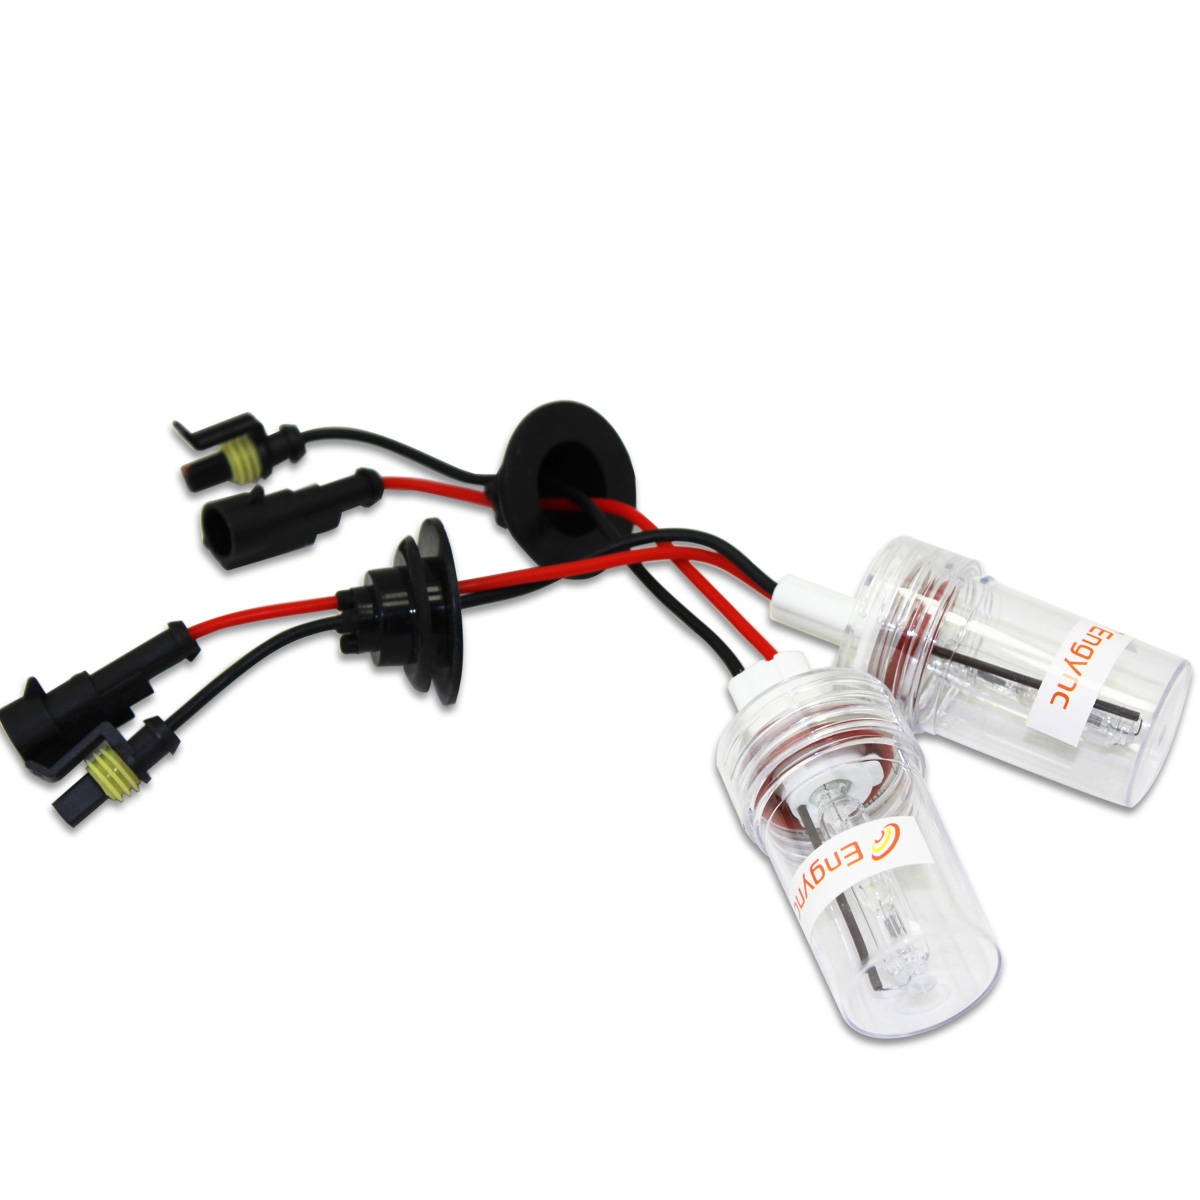 Adapter Wires additionally S L furthermore H Inpt also  as well Big Led Drl Running Strips Audi R Type Lights A Bed E Aab D E Ebc Ce. on replacement bulb 9007 wiring